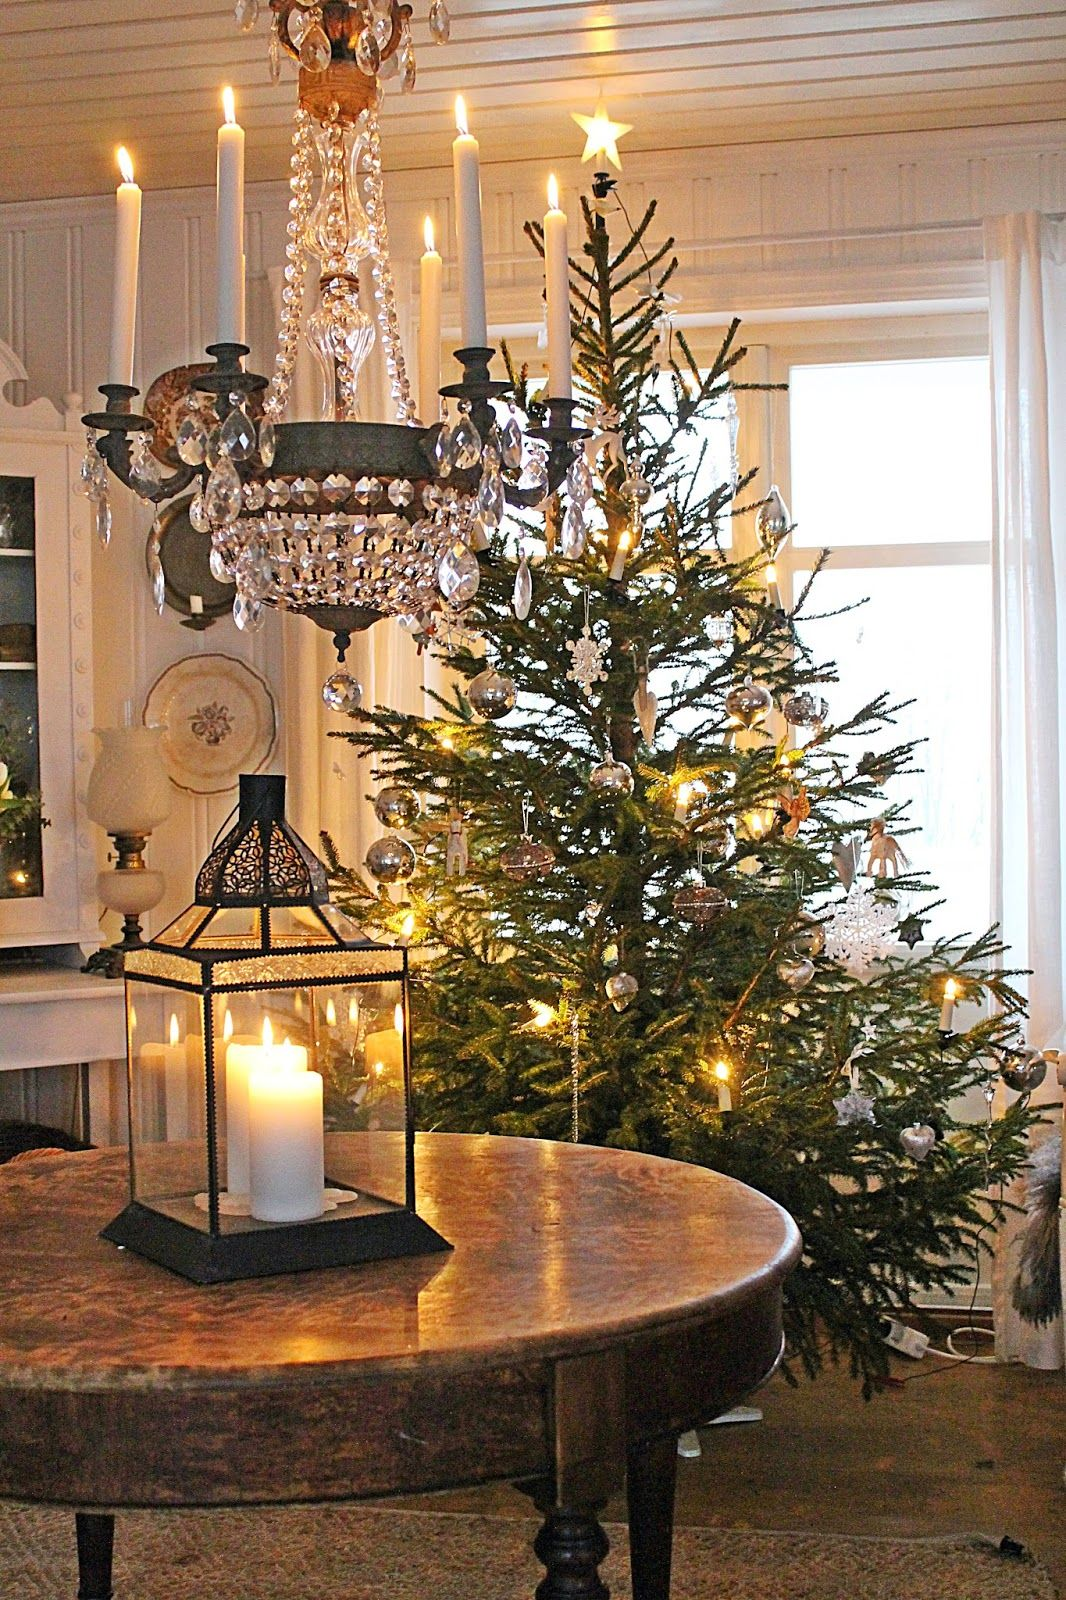 My favorite kind of tree..We never get that kind here in the south..I like that there is room between the branches for ornaments to hang freely....